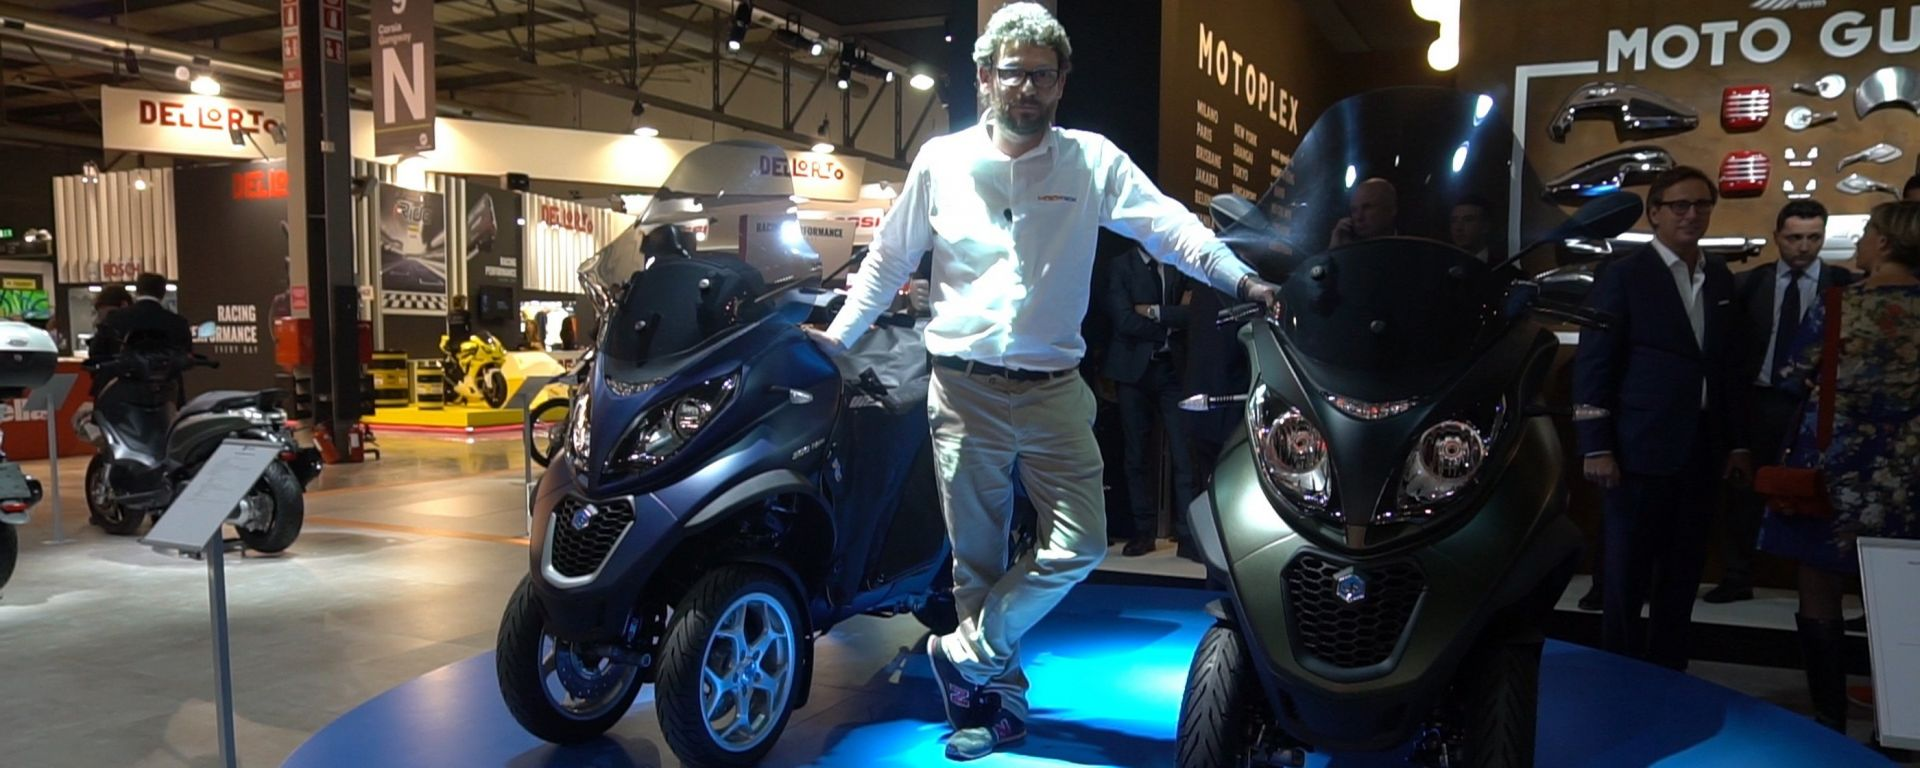 EICMA 2017: Piaggio MP3 350 e 500 versione Sport e Business [VIDEO]